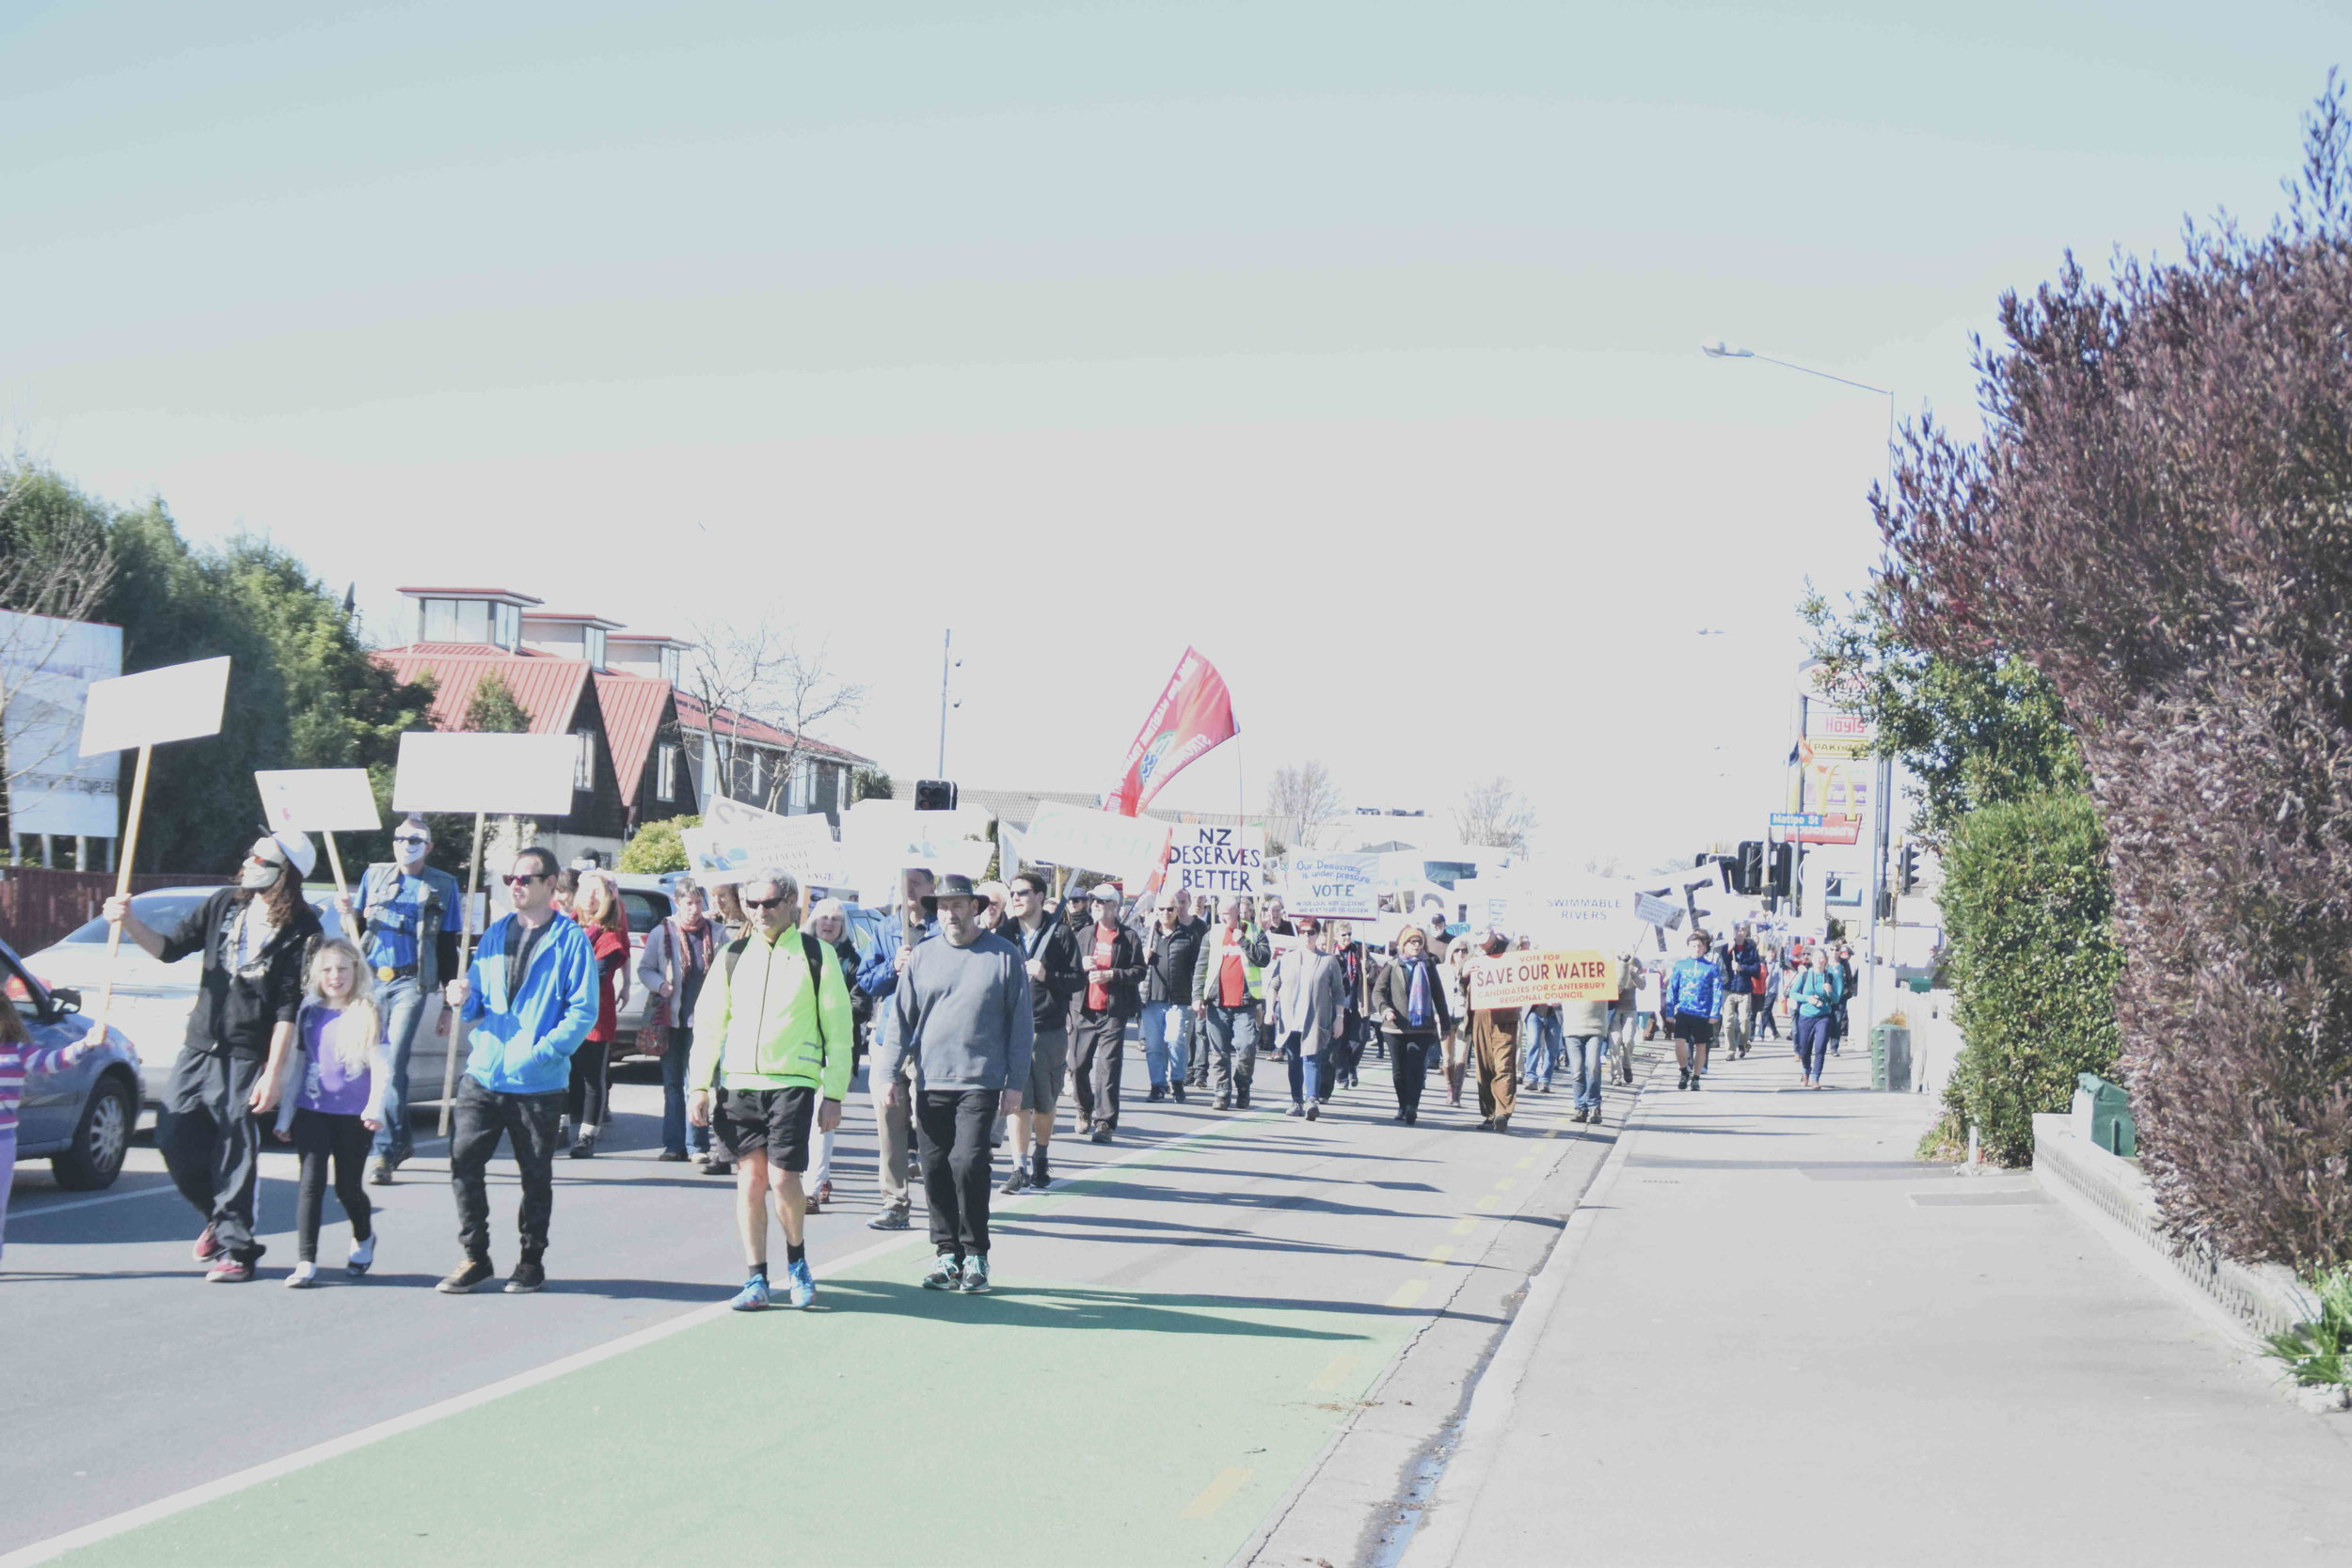 Anti-TPPA protestors marching on Riccarton Road in Christchurch on September 10